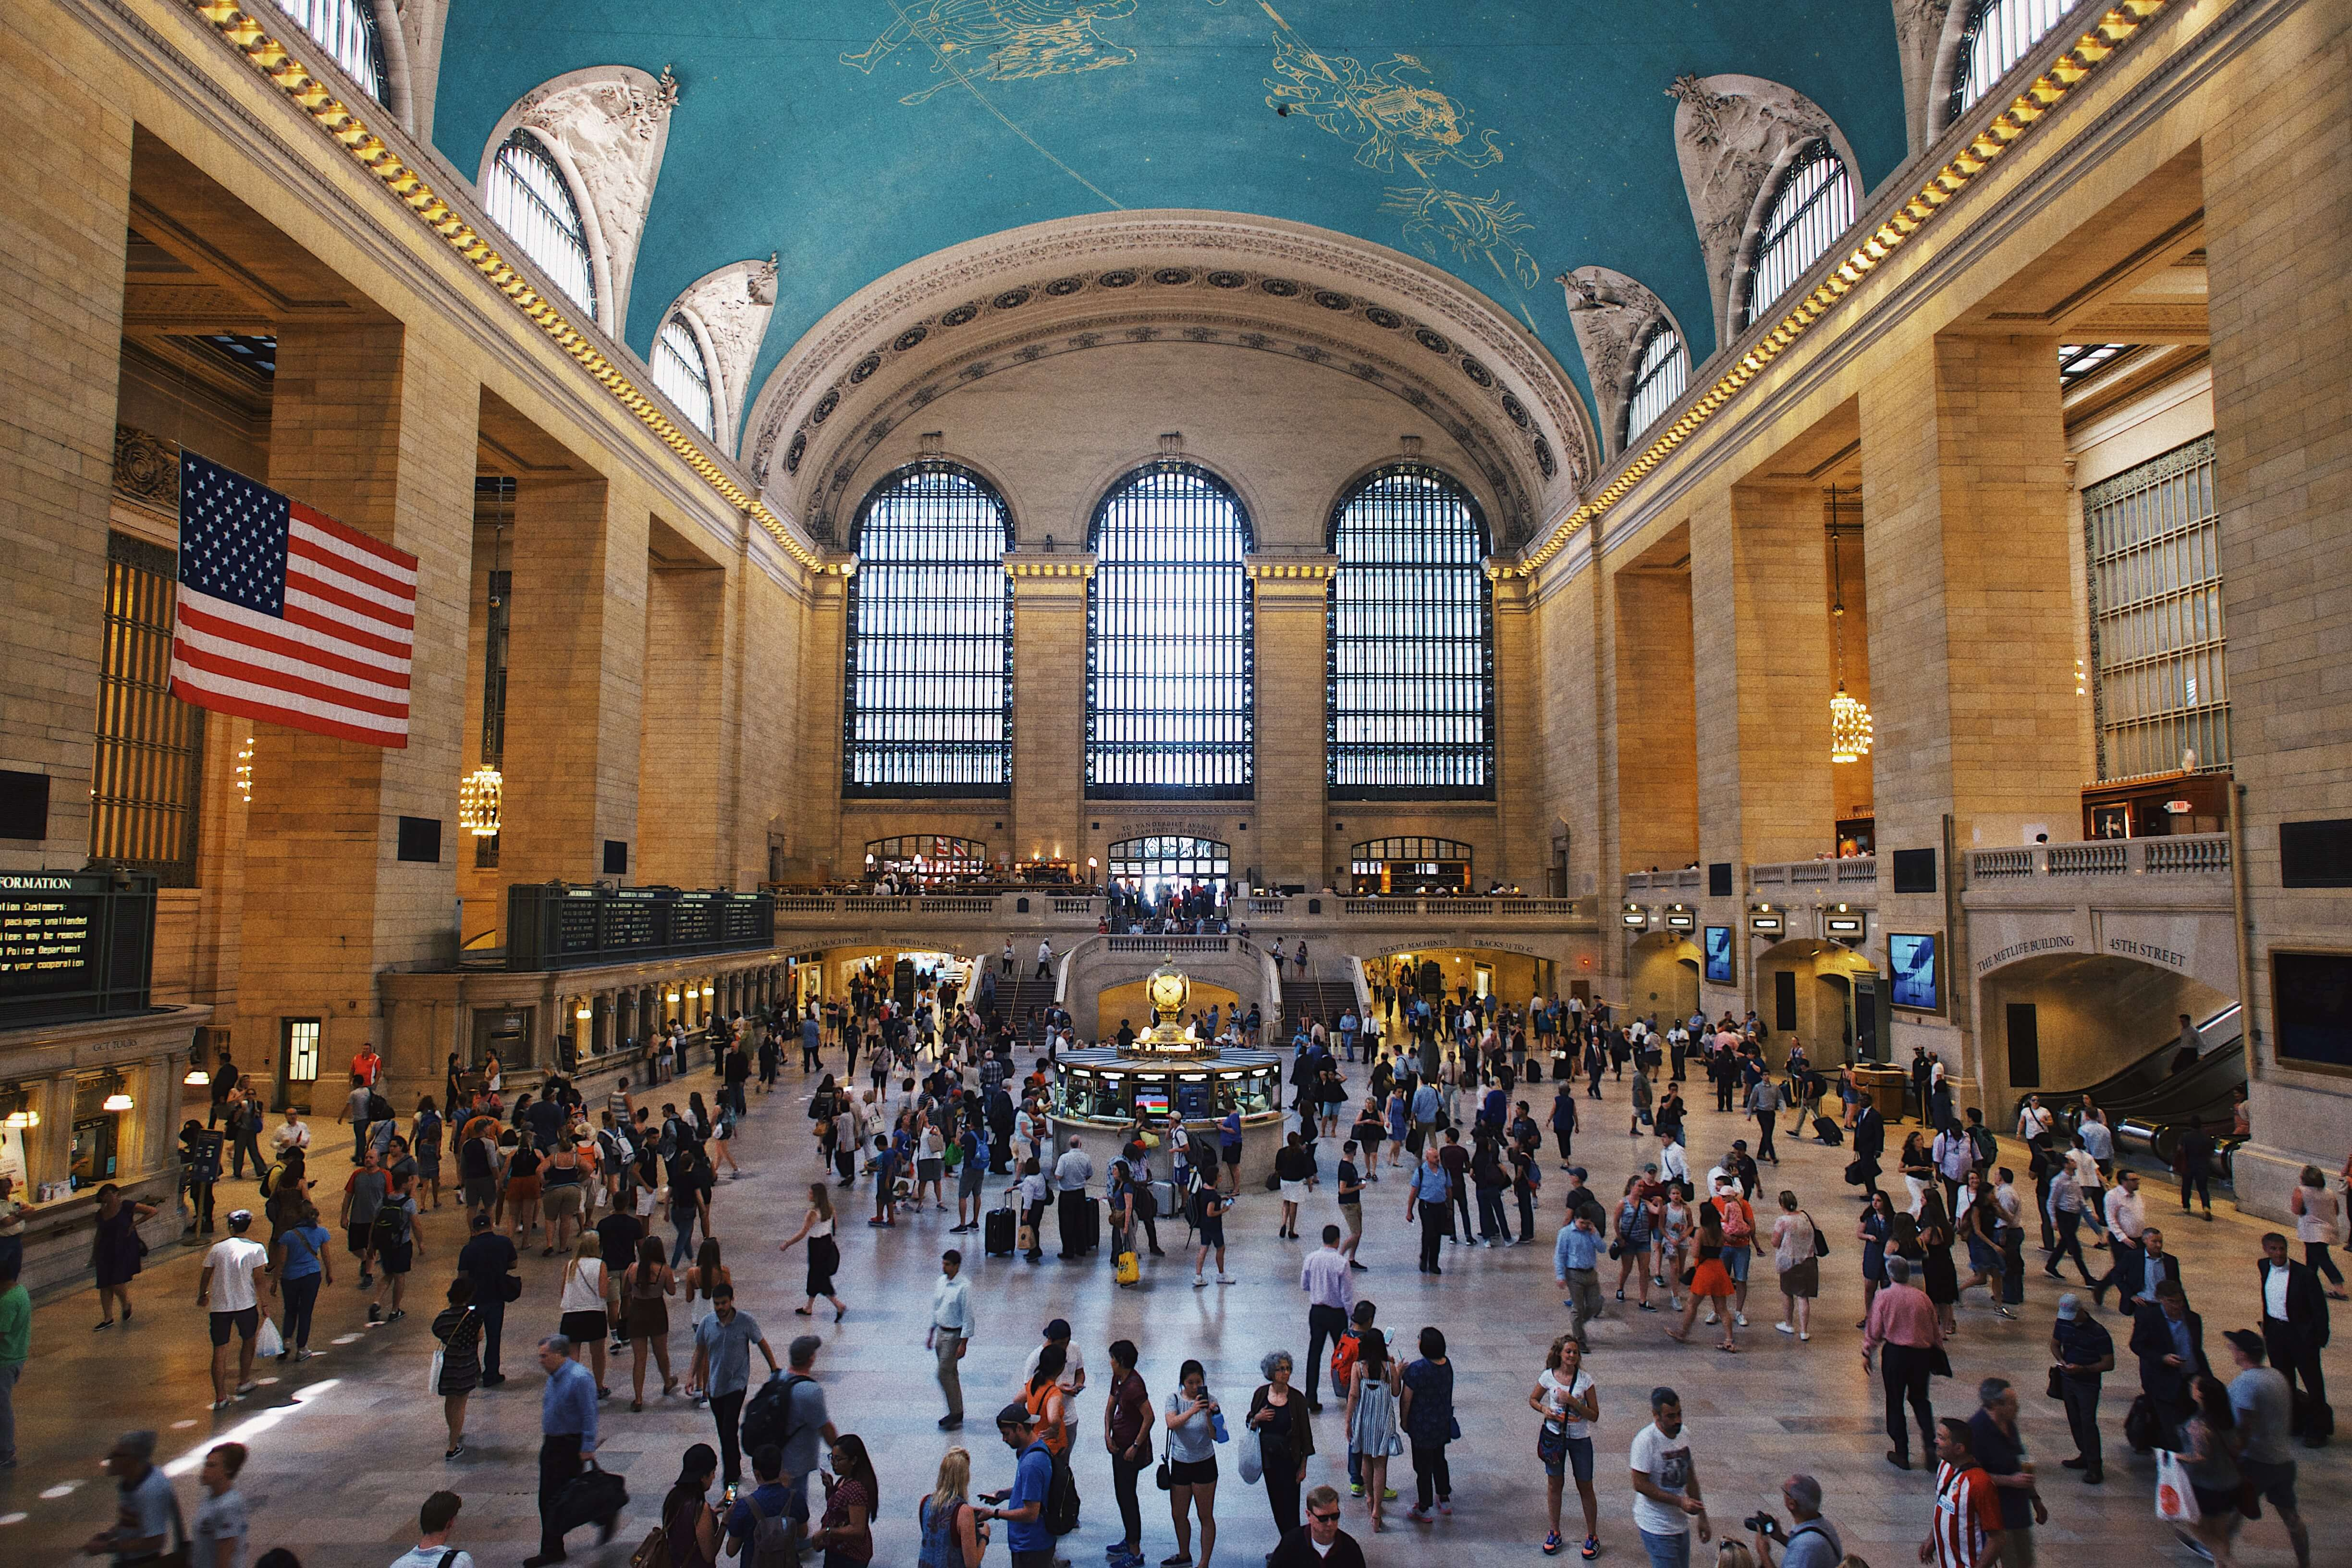 Grand Central Station interior NYC